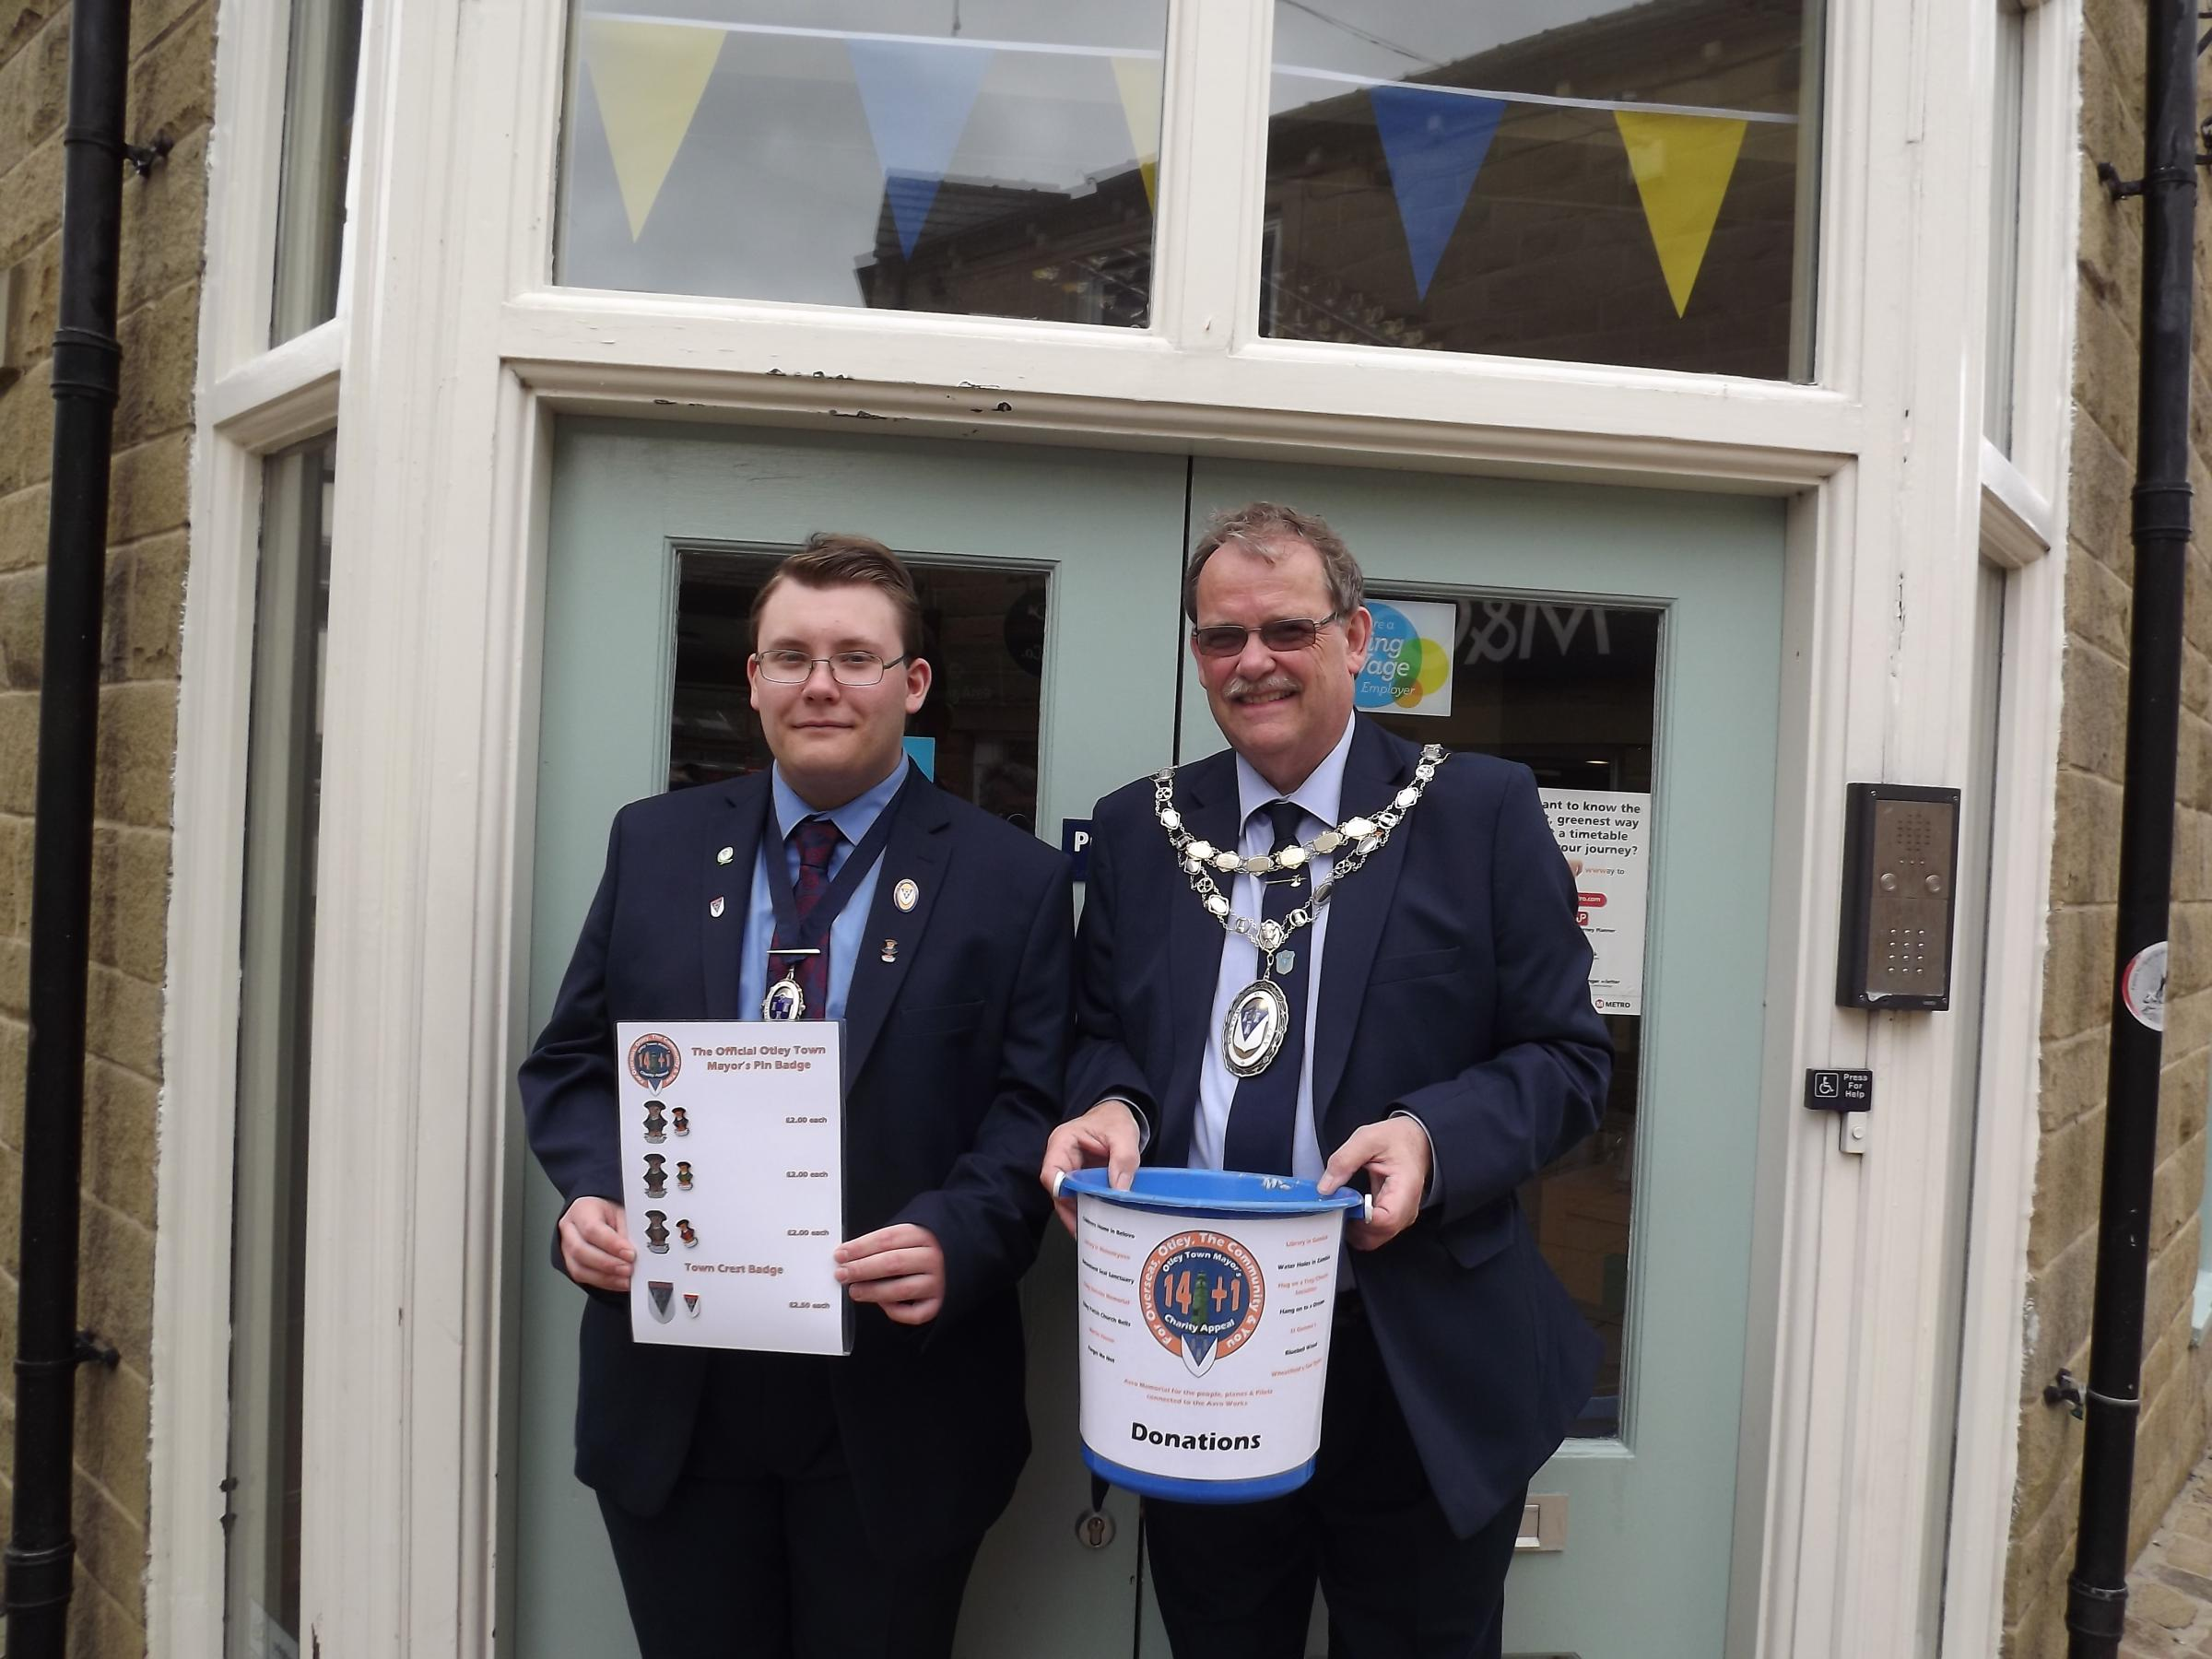 Otley Town Mayor Councillor Nigel Francis (right) with Consort and son Callum, sporting their new fundraiising Otley badges.